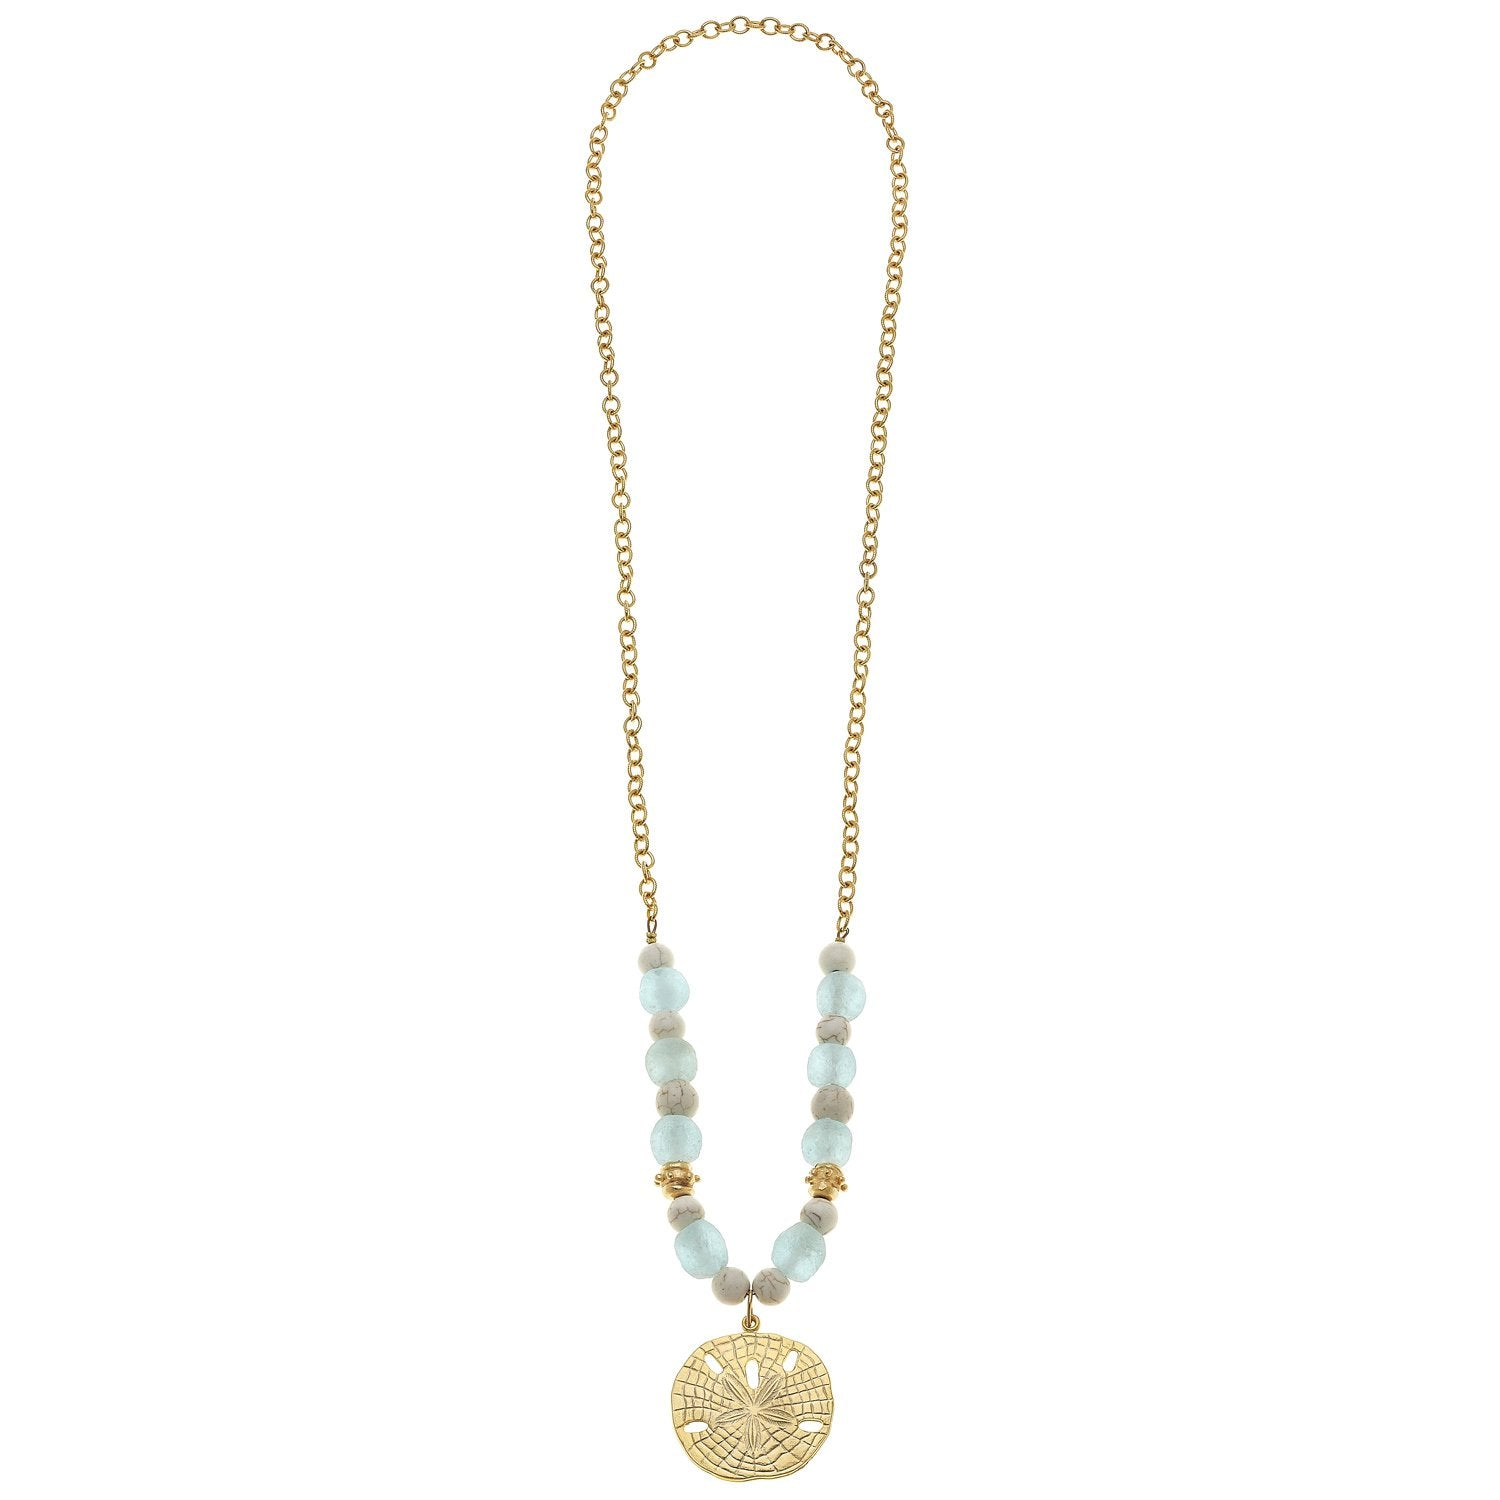 Susan Shaw Gold Sand Dollar on Textured Chain with Recycled Glass & White Turquoise Necklace